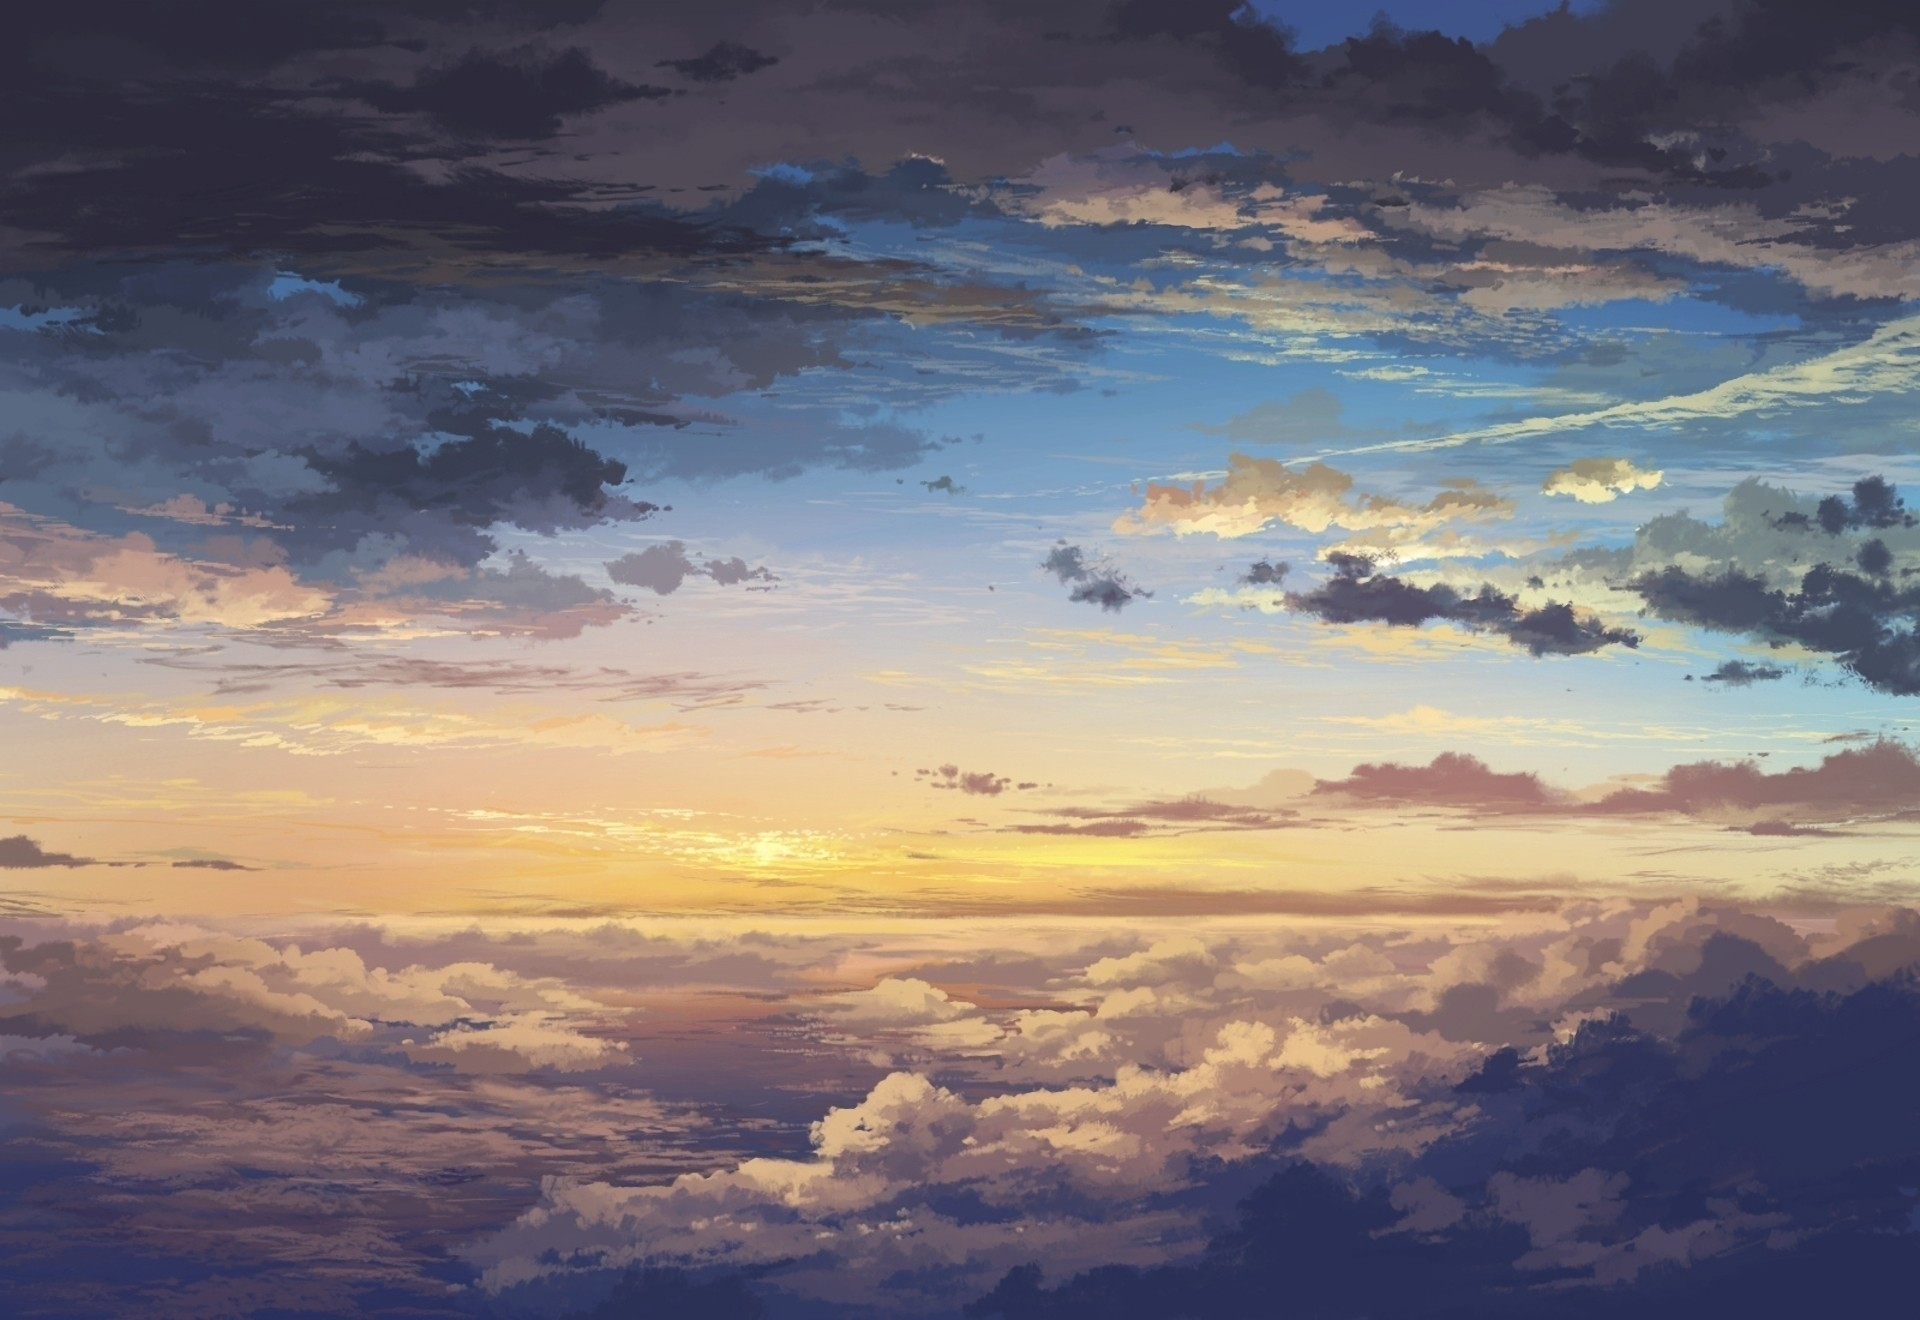 Anime 1920x1320 5 Centimeters Per Second clouds sky anime sunlight